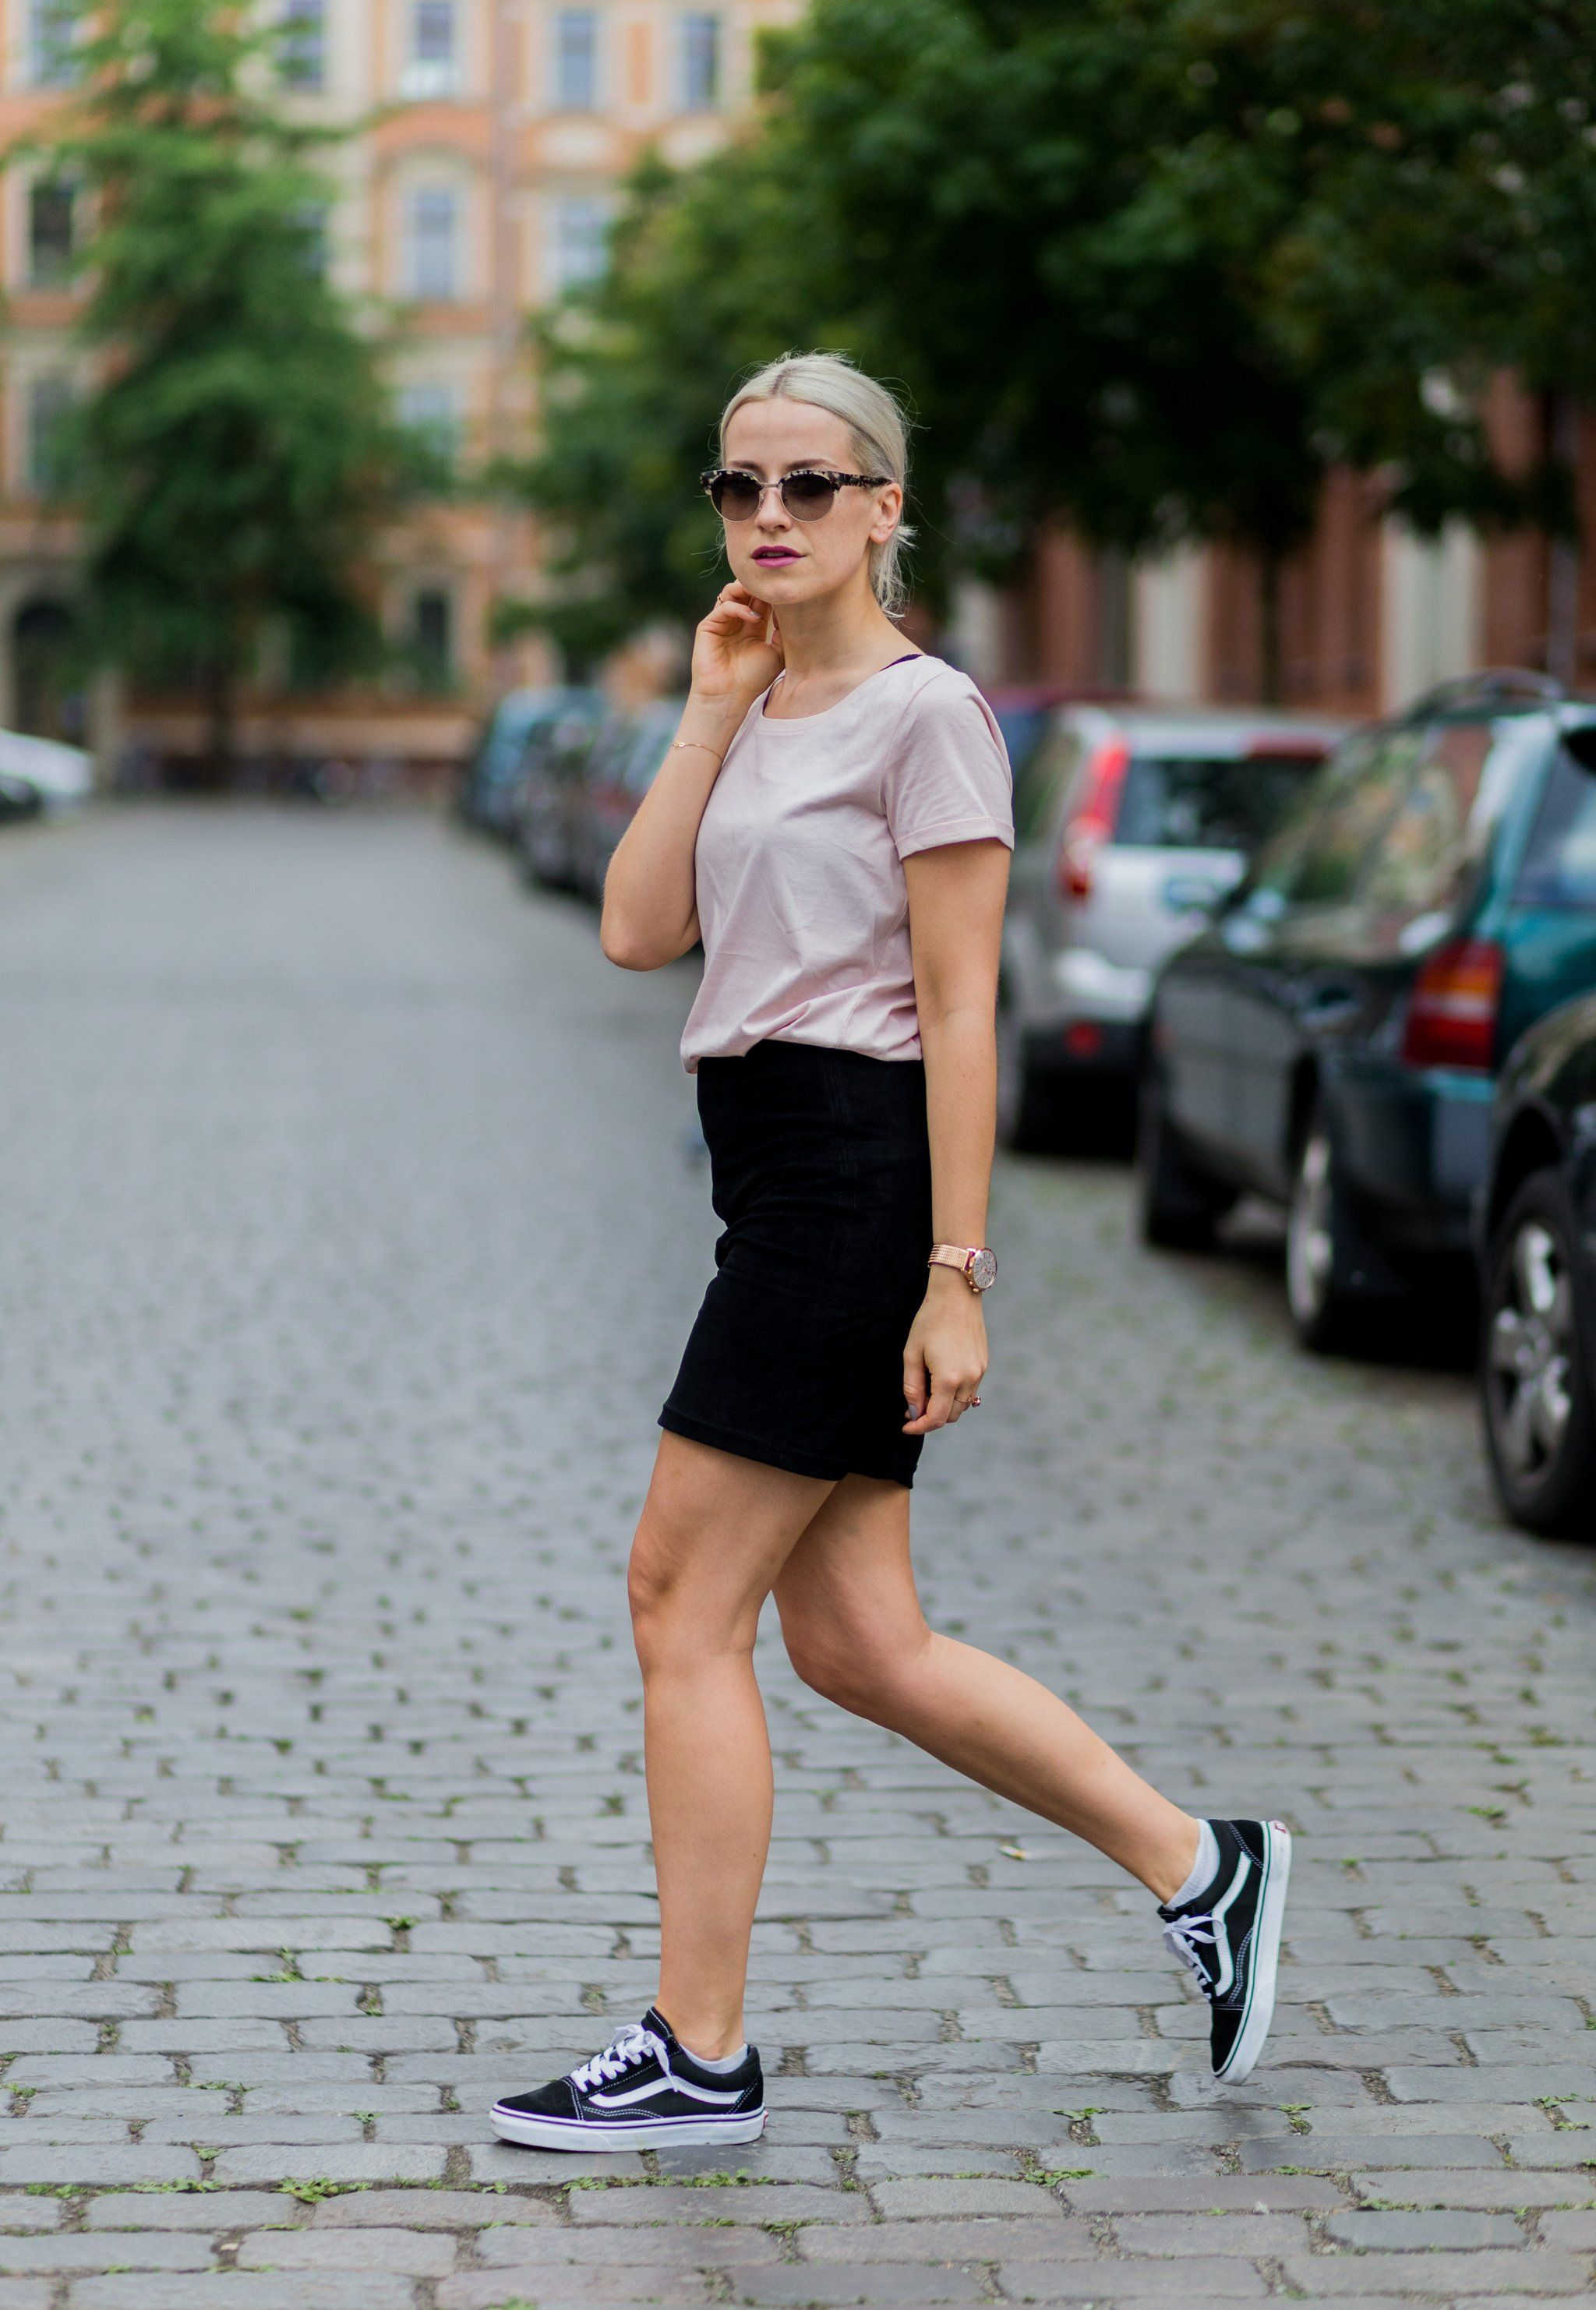 A cool sneaker to add a casual vibe to a miniskirt.